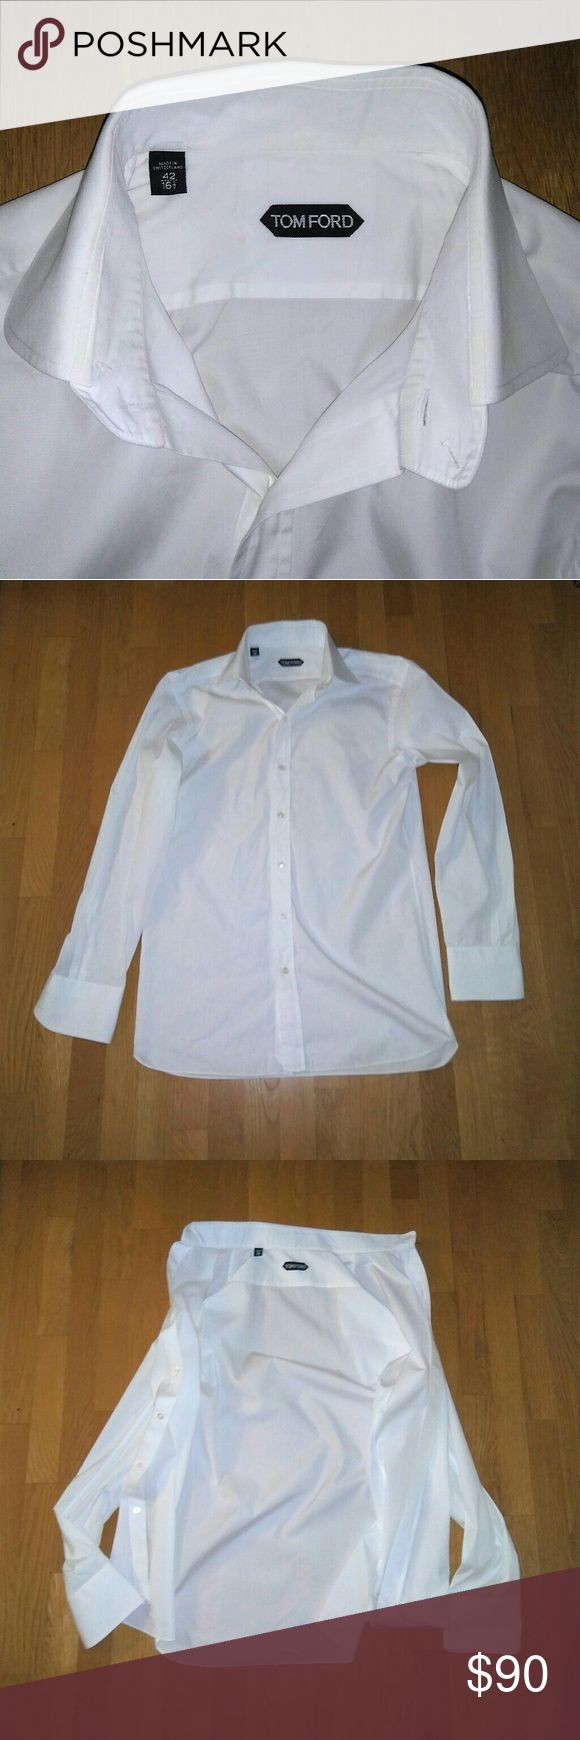 Tom Ford Dress Shirt White 16.5 eu 42 Sz Eu 42 Us 16.5 .Nice shape used dress shirt . Famous quality super high end 100% cotton . neiman marcus $570 . Crisp white  color . Good shape . Have 2 more ready for listing regular cuff. Nike Boost 80s 90s  Calvin Klein Adidas Vans Chloe Mac  Vintage items lv  Gucci urban givenchey Ysl vuitton Goyard Dior  Ck polo levis  Pink Victoria's Secret Ralph Lauren Converse Vintage Celine Tom Ford Shirts Dress Shirts